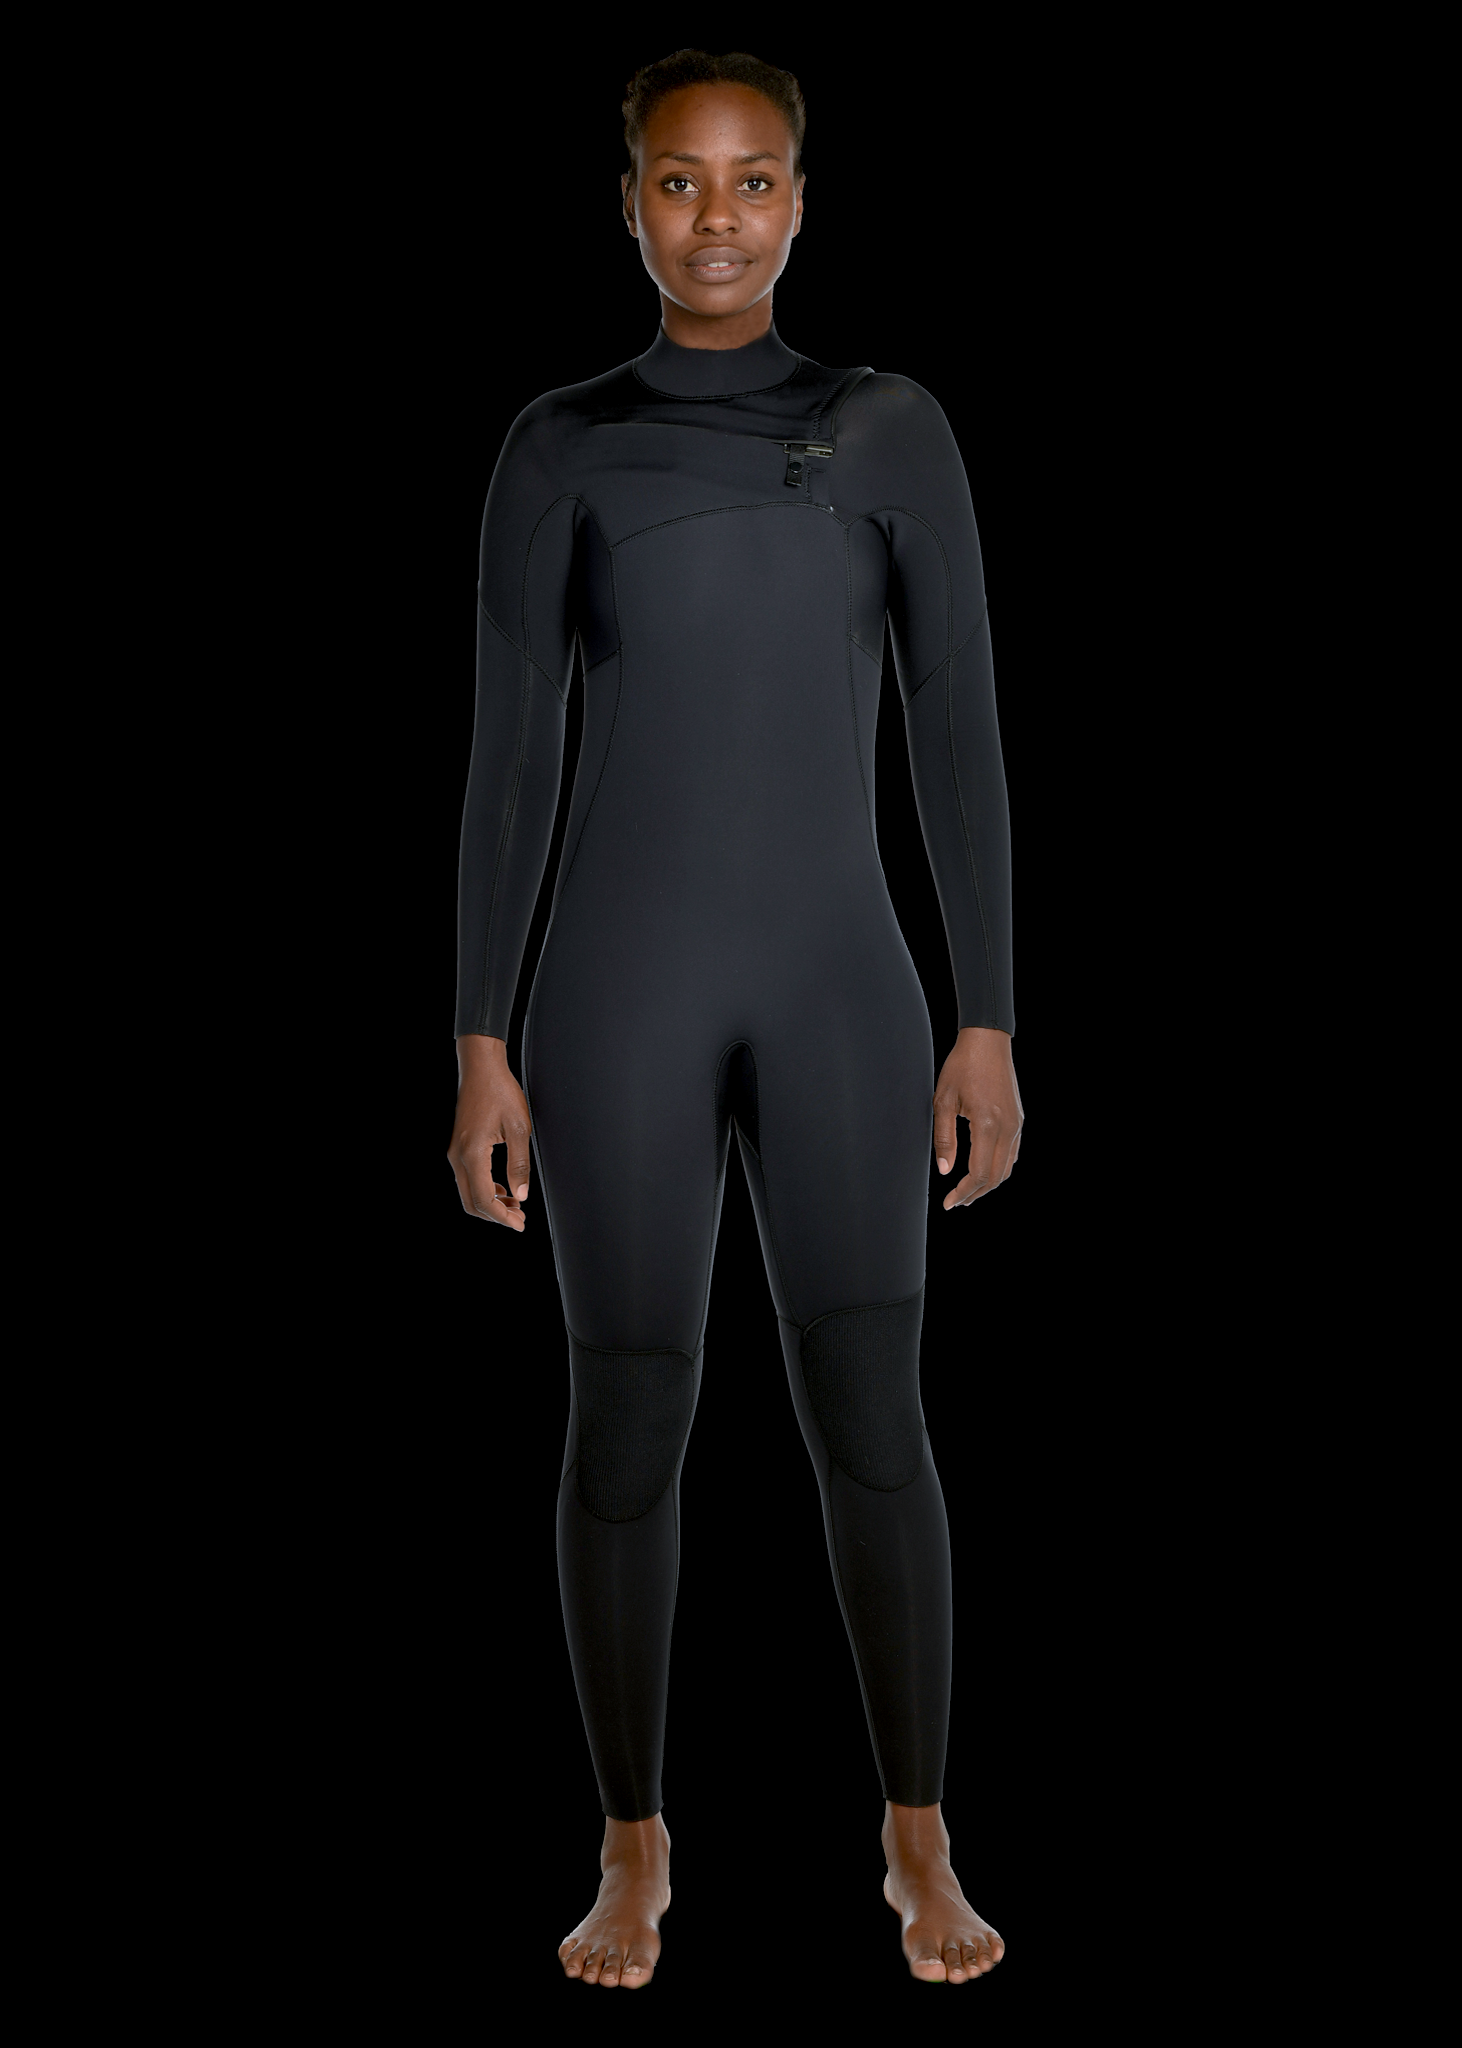 e20360d893 Womens 3/2 Premium Chest Zip Wetsuit